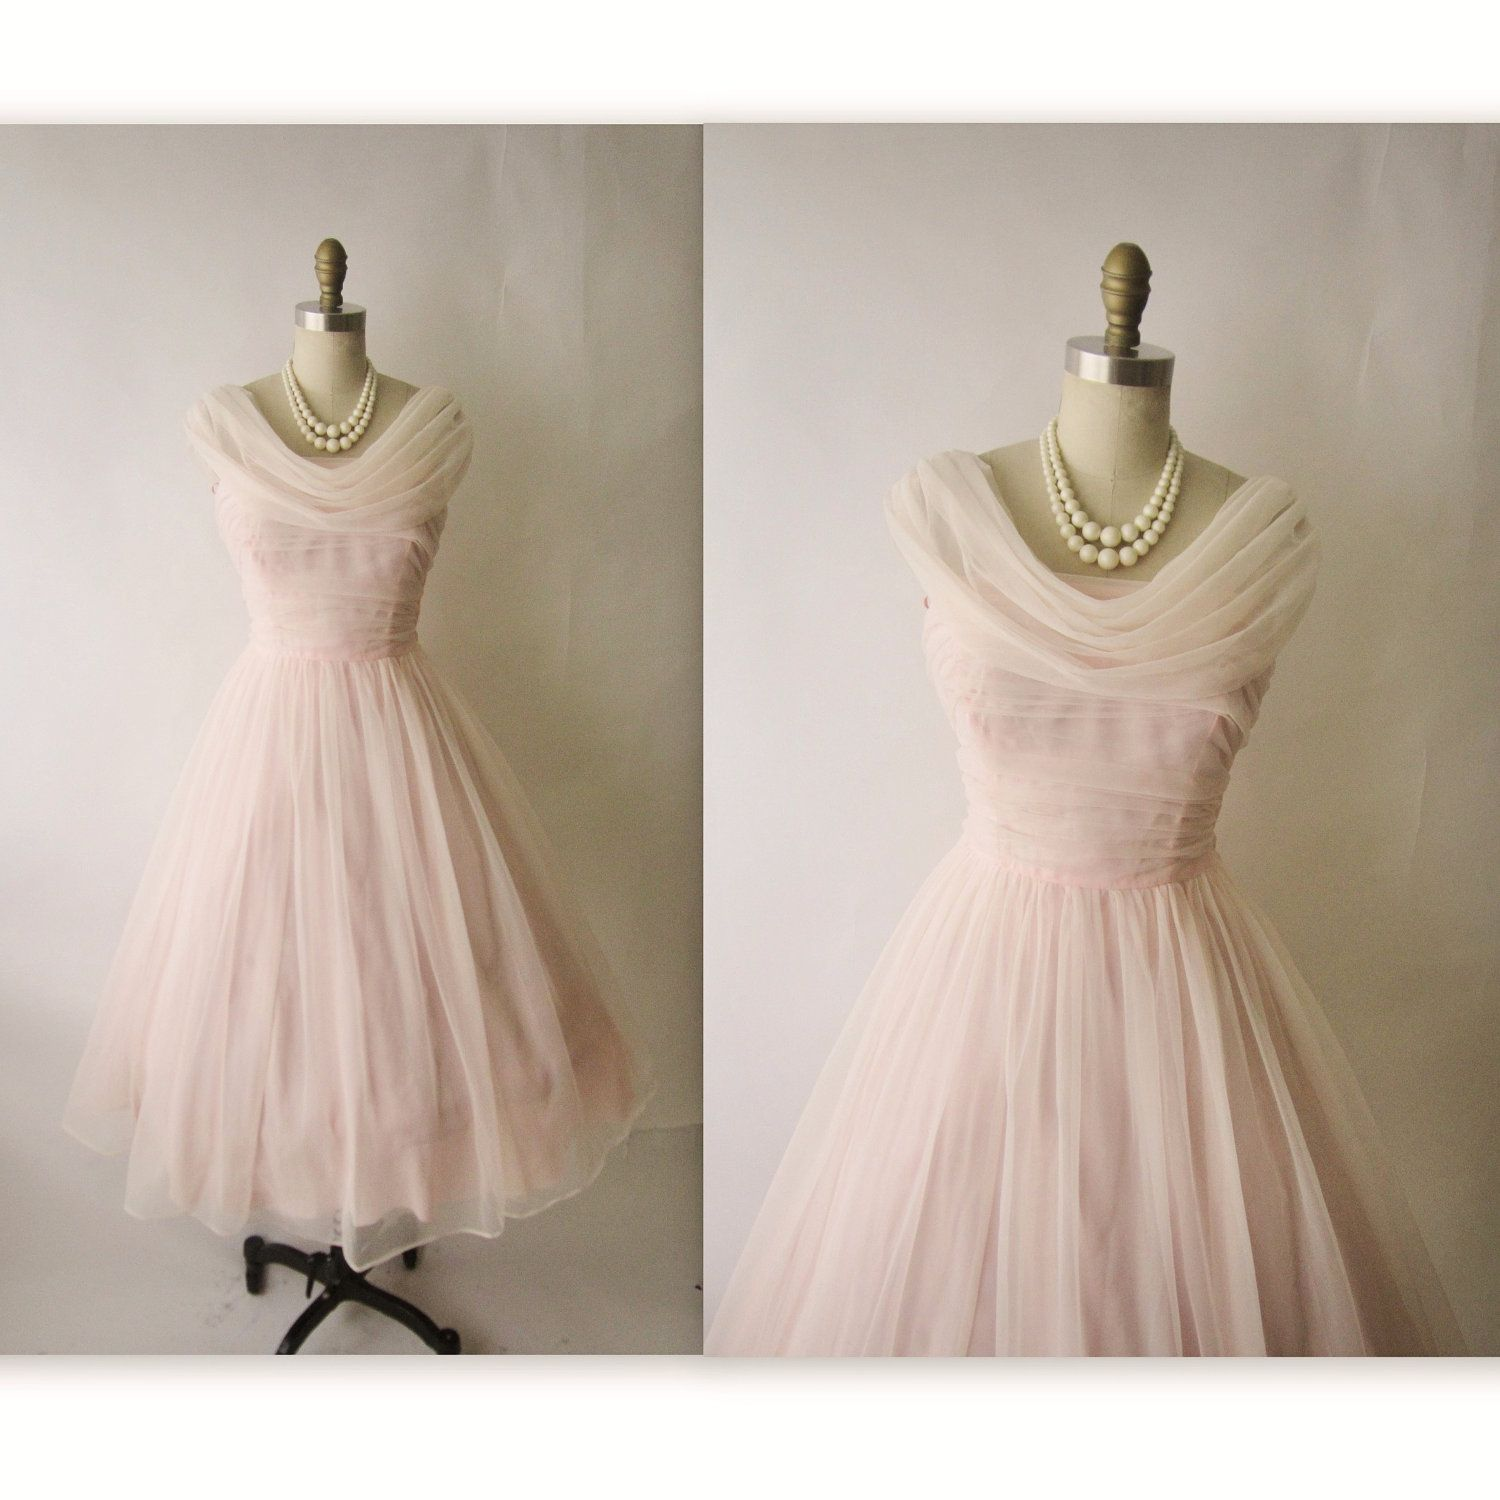 Gown dress for wedding party  us Chiffon Dress  Vintage us Ruched Pink Chiffon Wedding